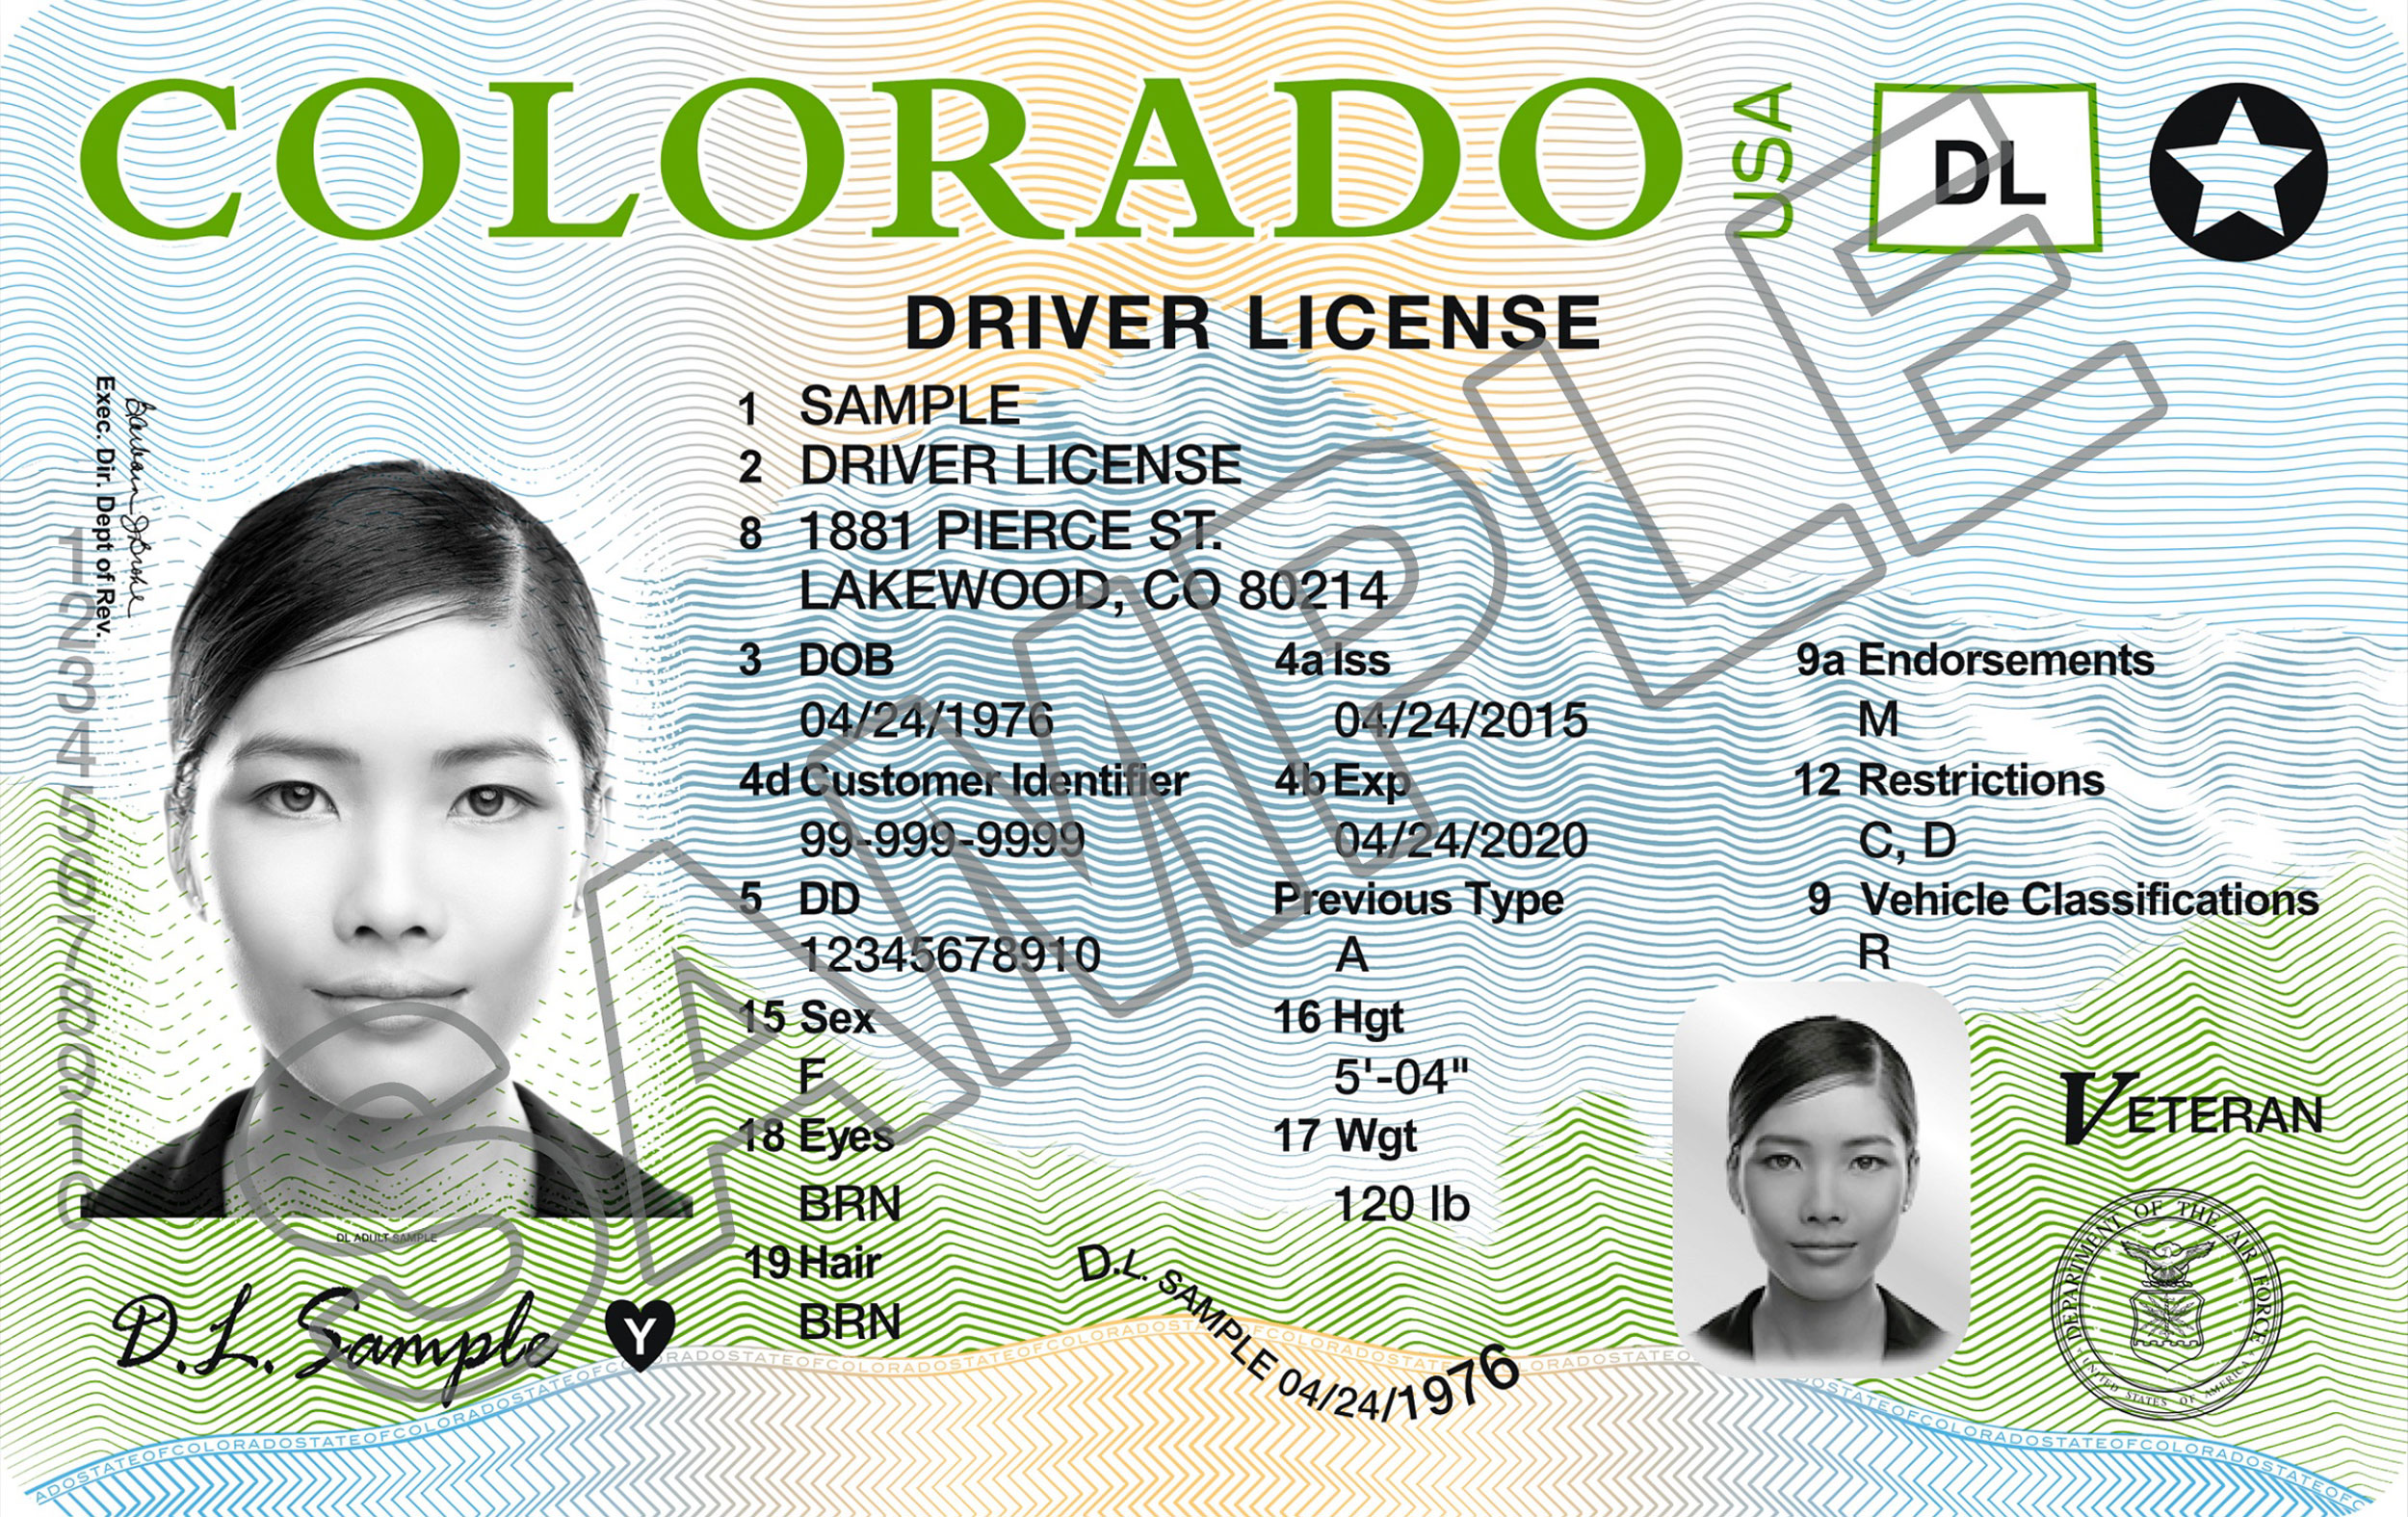 Photo: Colorado 2016 New Driver's License Design